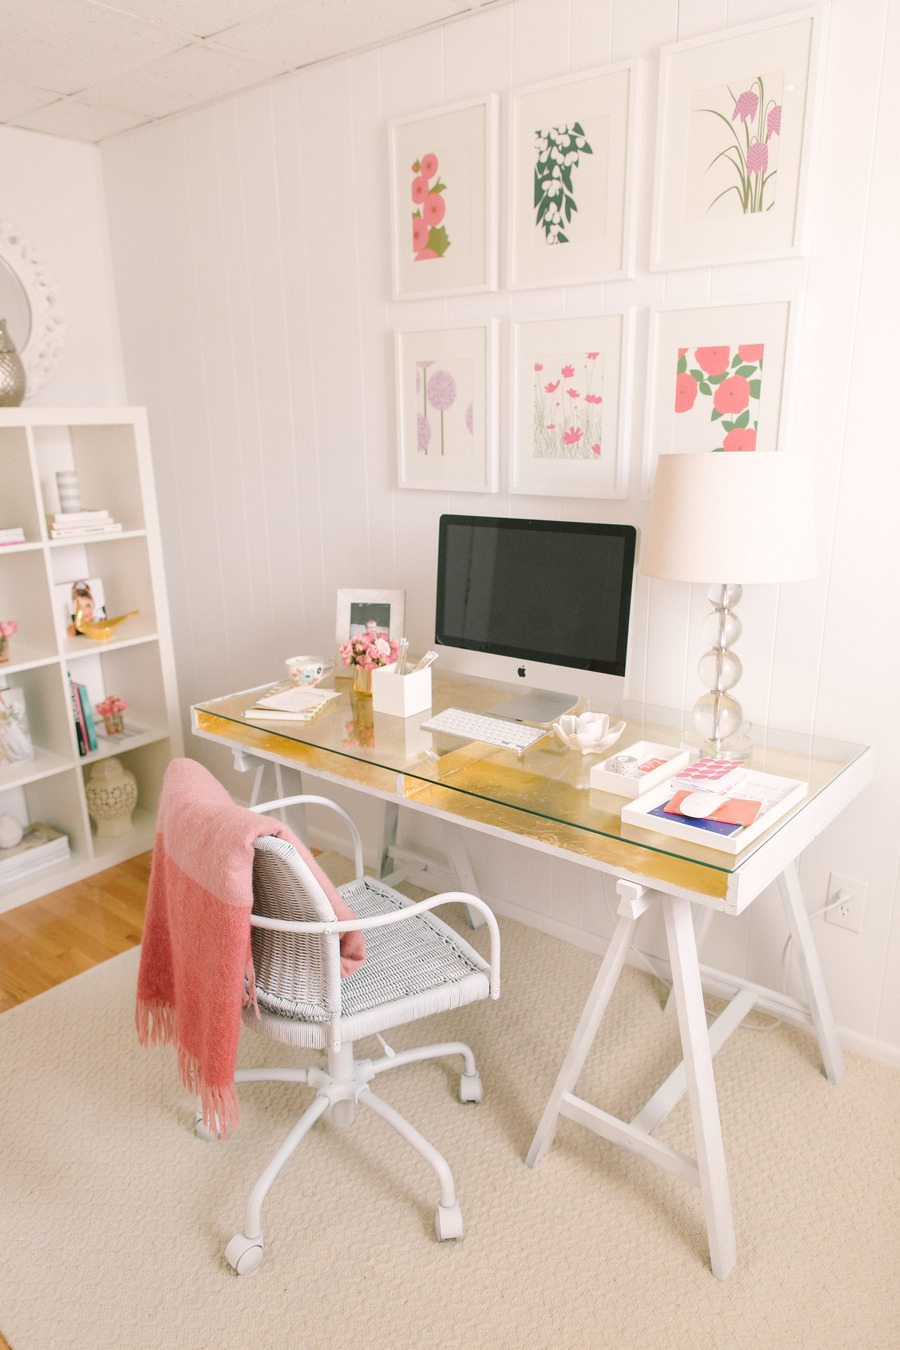 10 décorations féminines pour le bureau - 10 feminine decorations ...